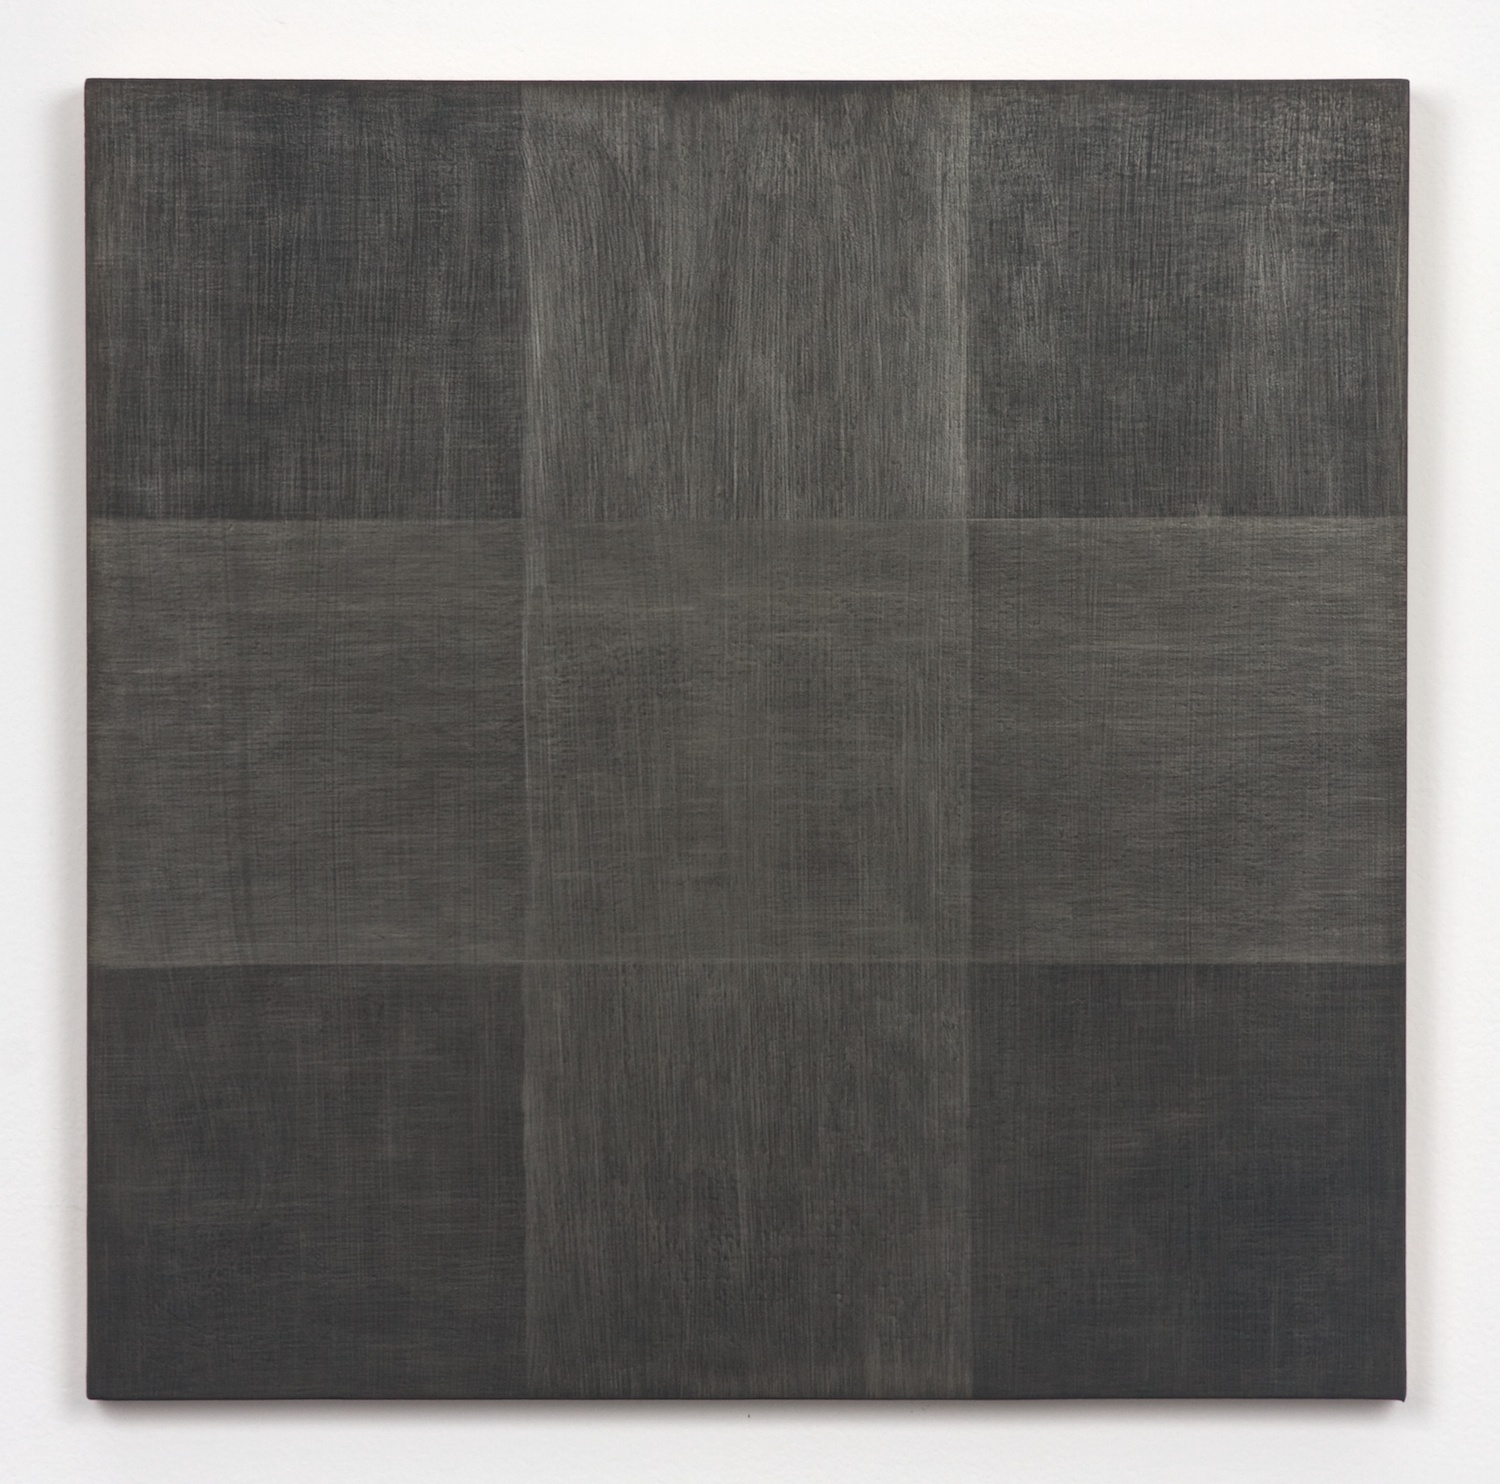 Michelle Grabner  Untitled  2010 Silver and gesso on panel 15h x 15w in MGrab178